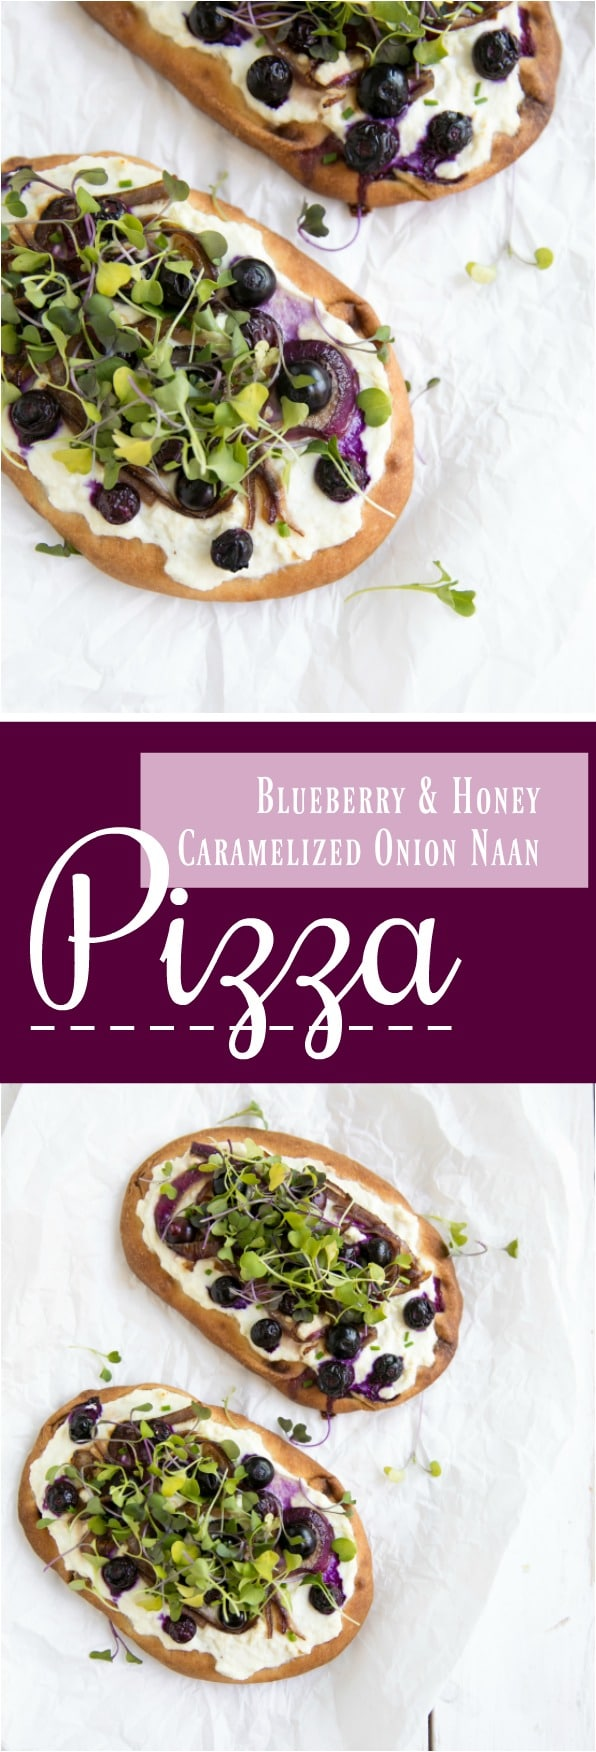 Blueberry and Honey Caramelized Onion Naan Pizza. #healthyrecipes #pizza #naan #veg #honey